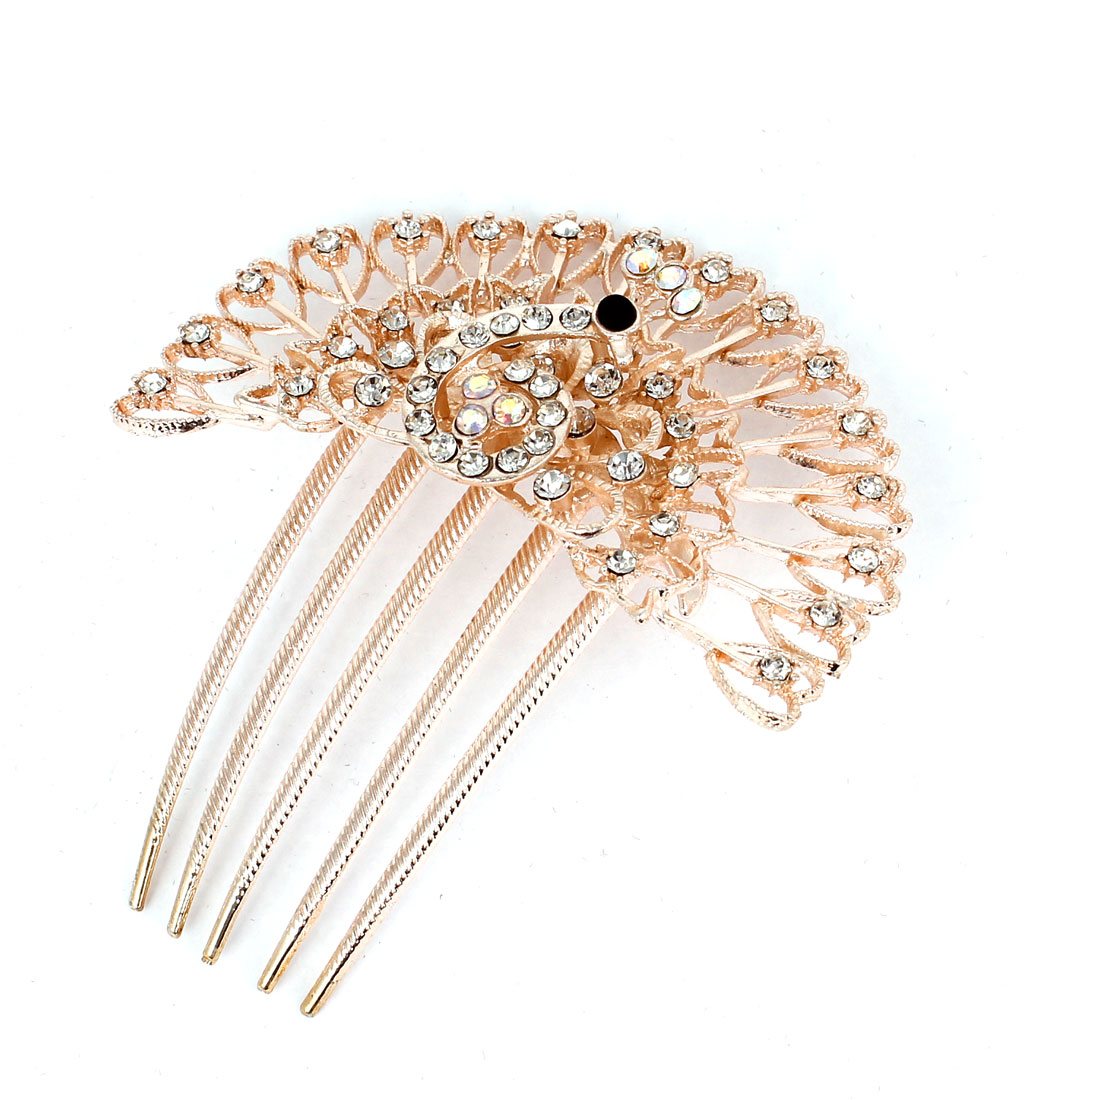 Wedding Plastic Rhinestone Peacock Hair Comb Slide Clip 5 Teeth Silver Tone